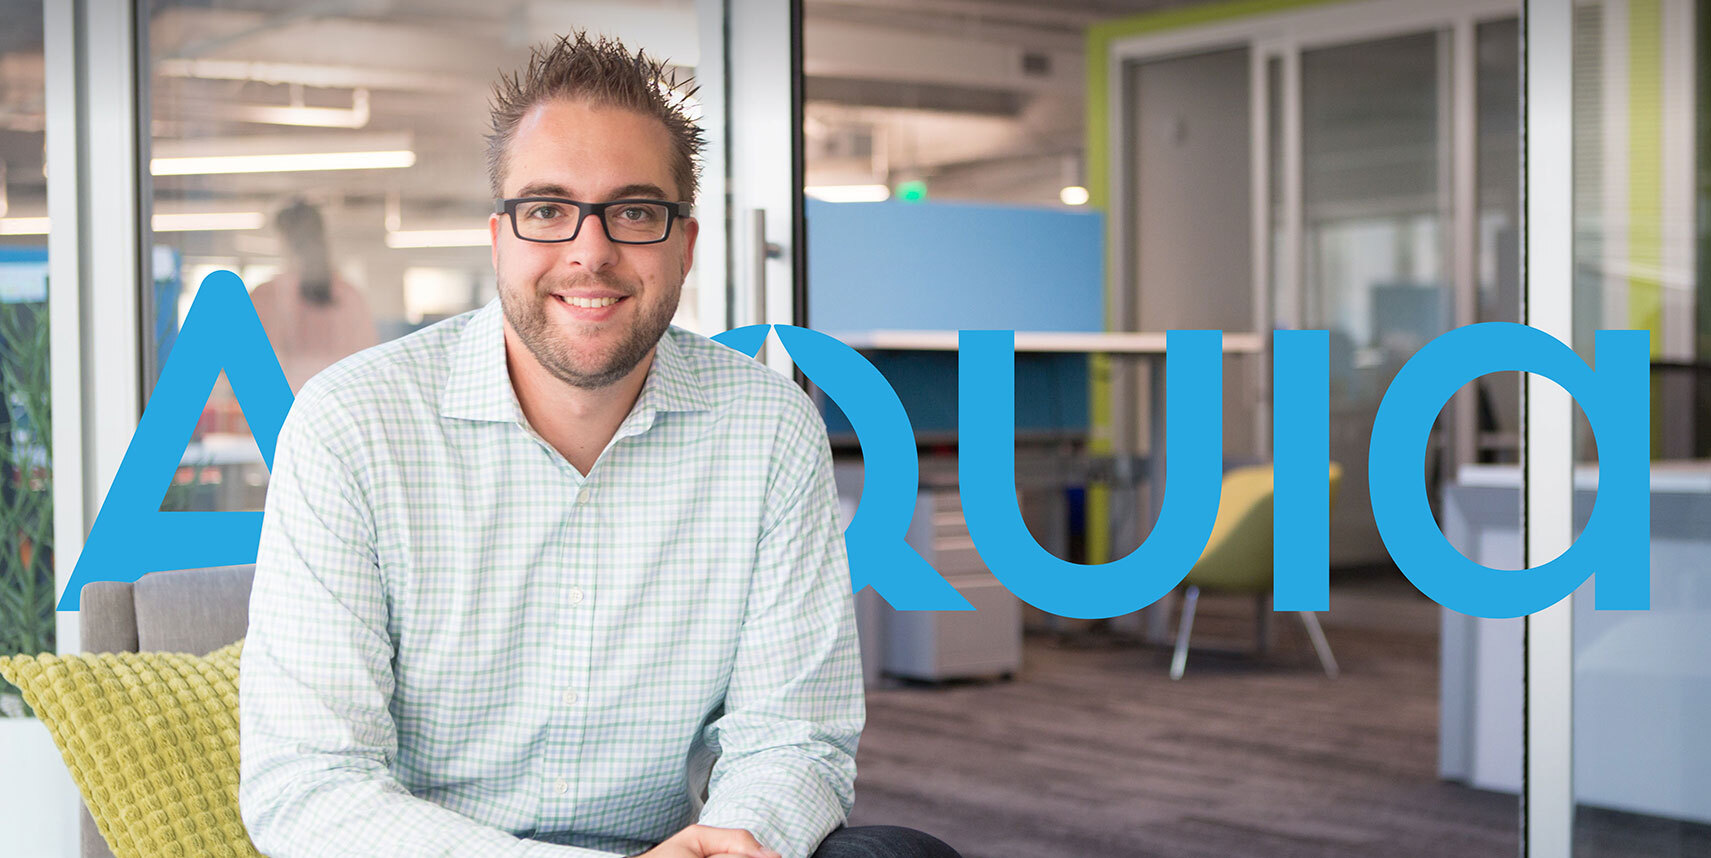 Dries Buytaert, co-founder and CTO at Acquia